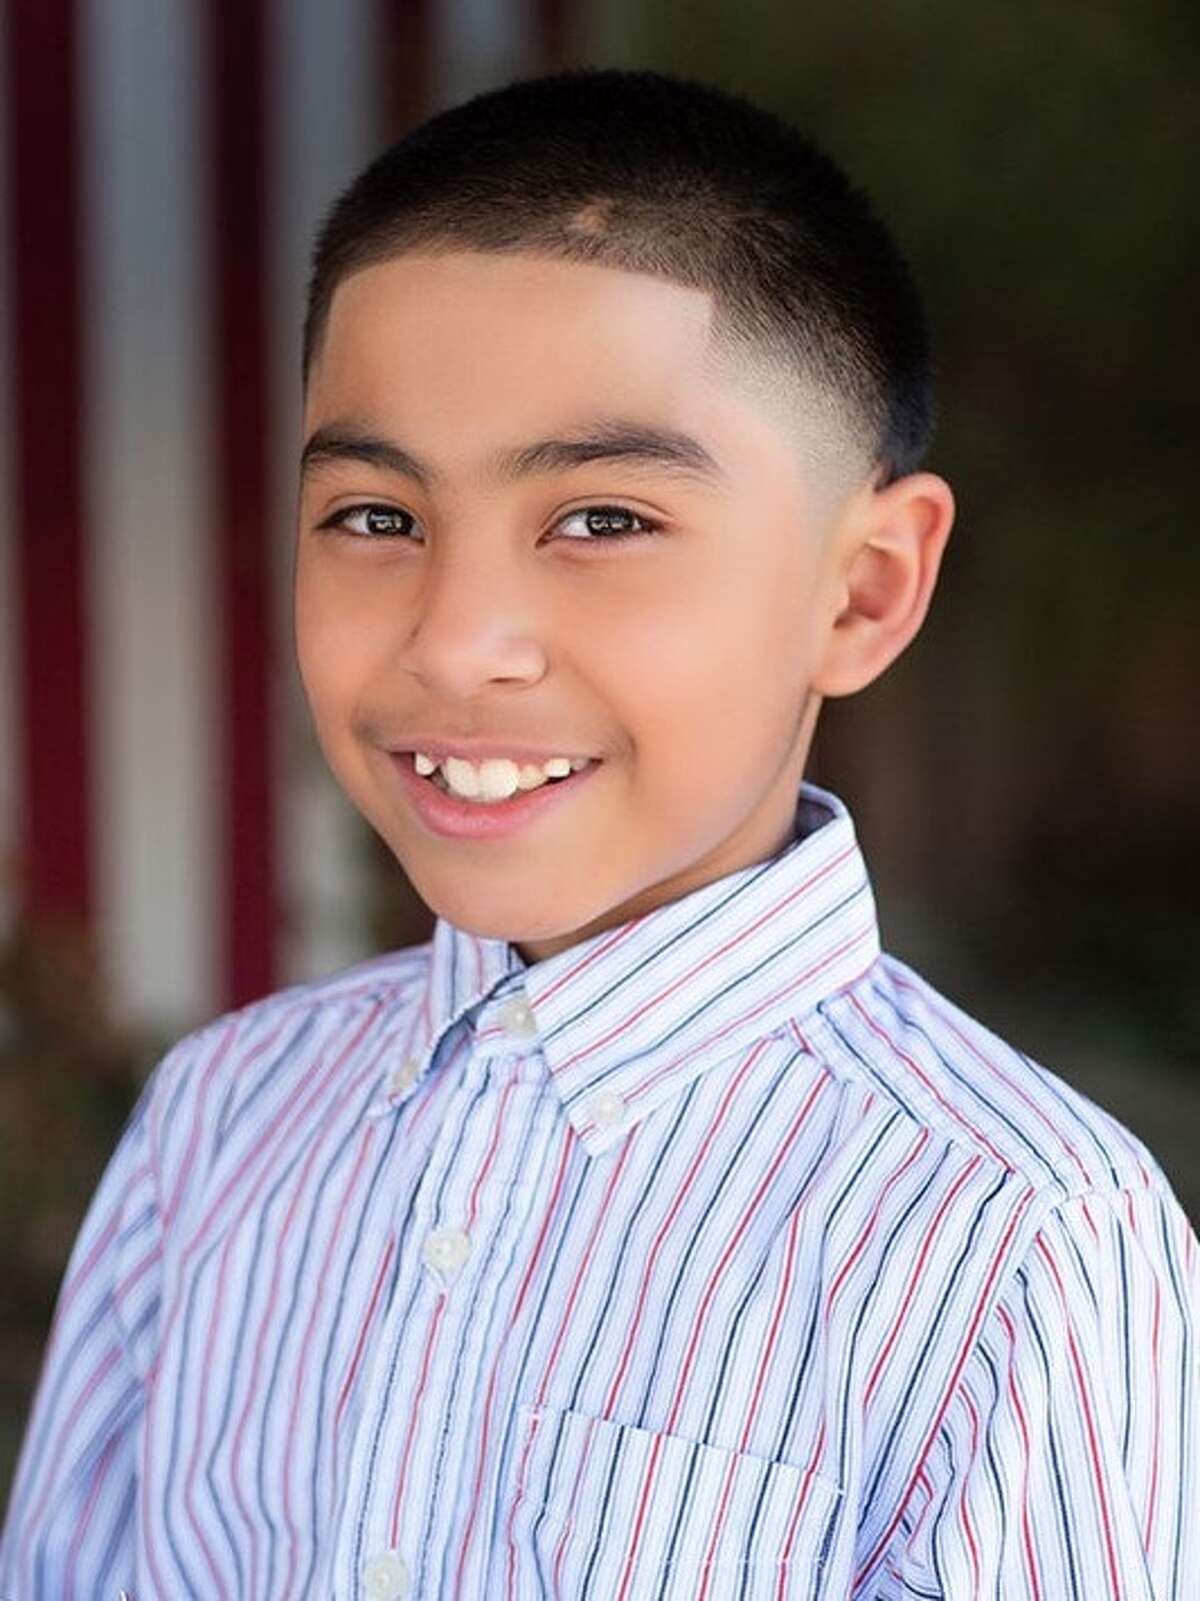 Jose is among the children listed on the Texas Adoption Resource Exchange (TARE) website. Visit https://www.dfps.state.tx.us/Application/TARE/Home.aspx/Default for more details.